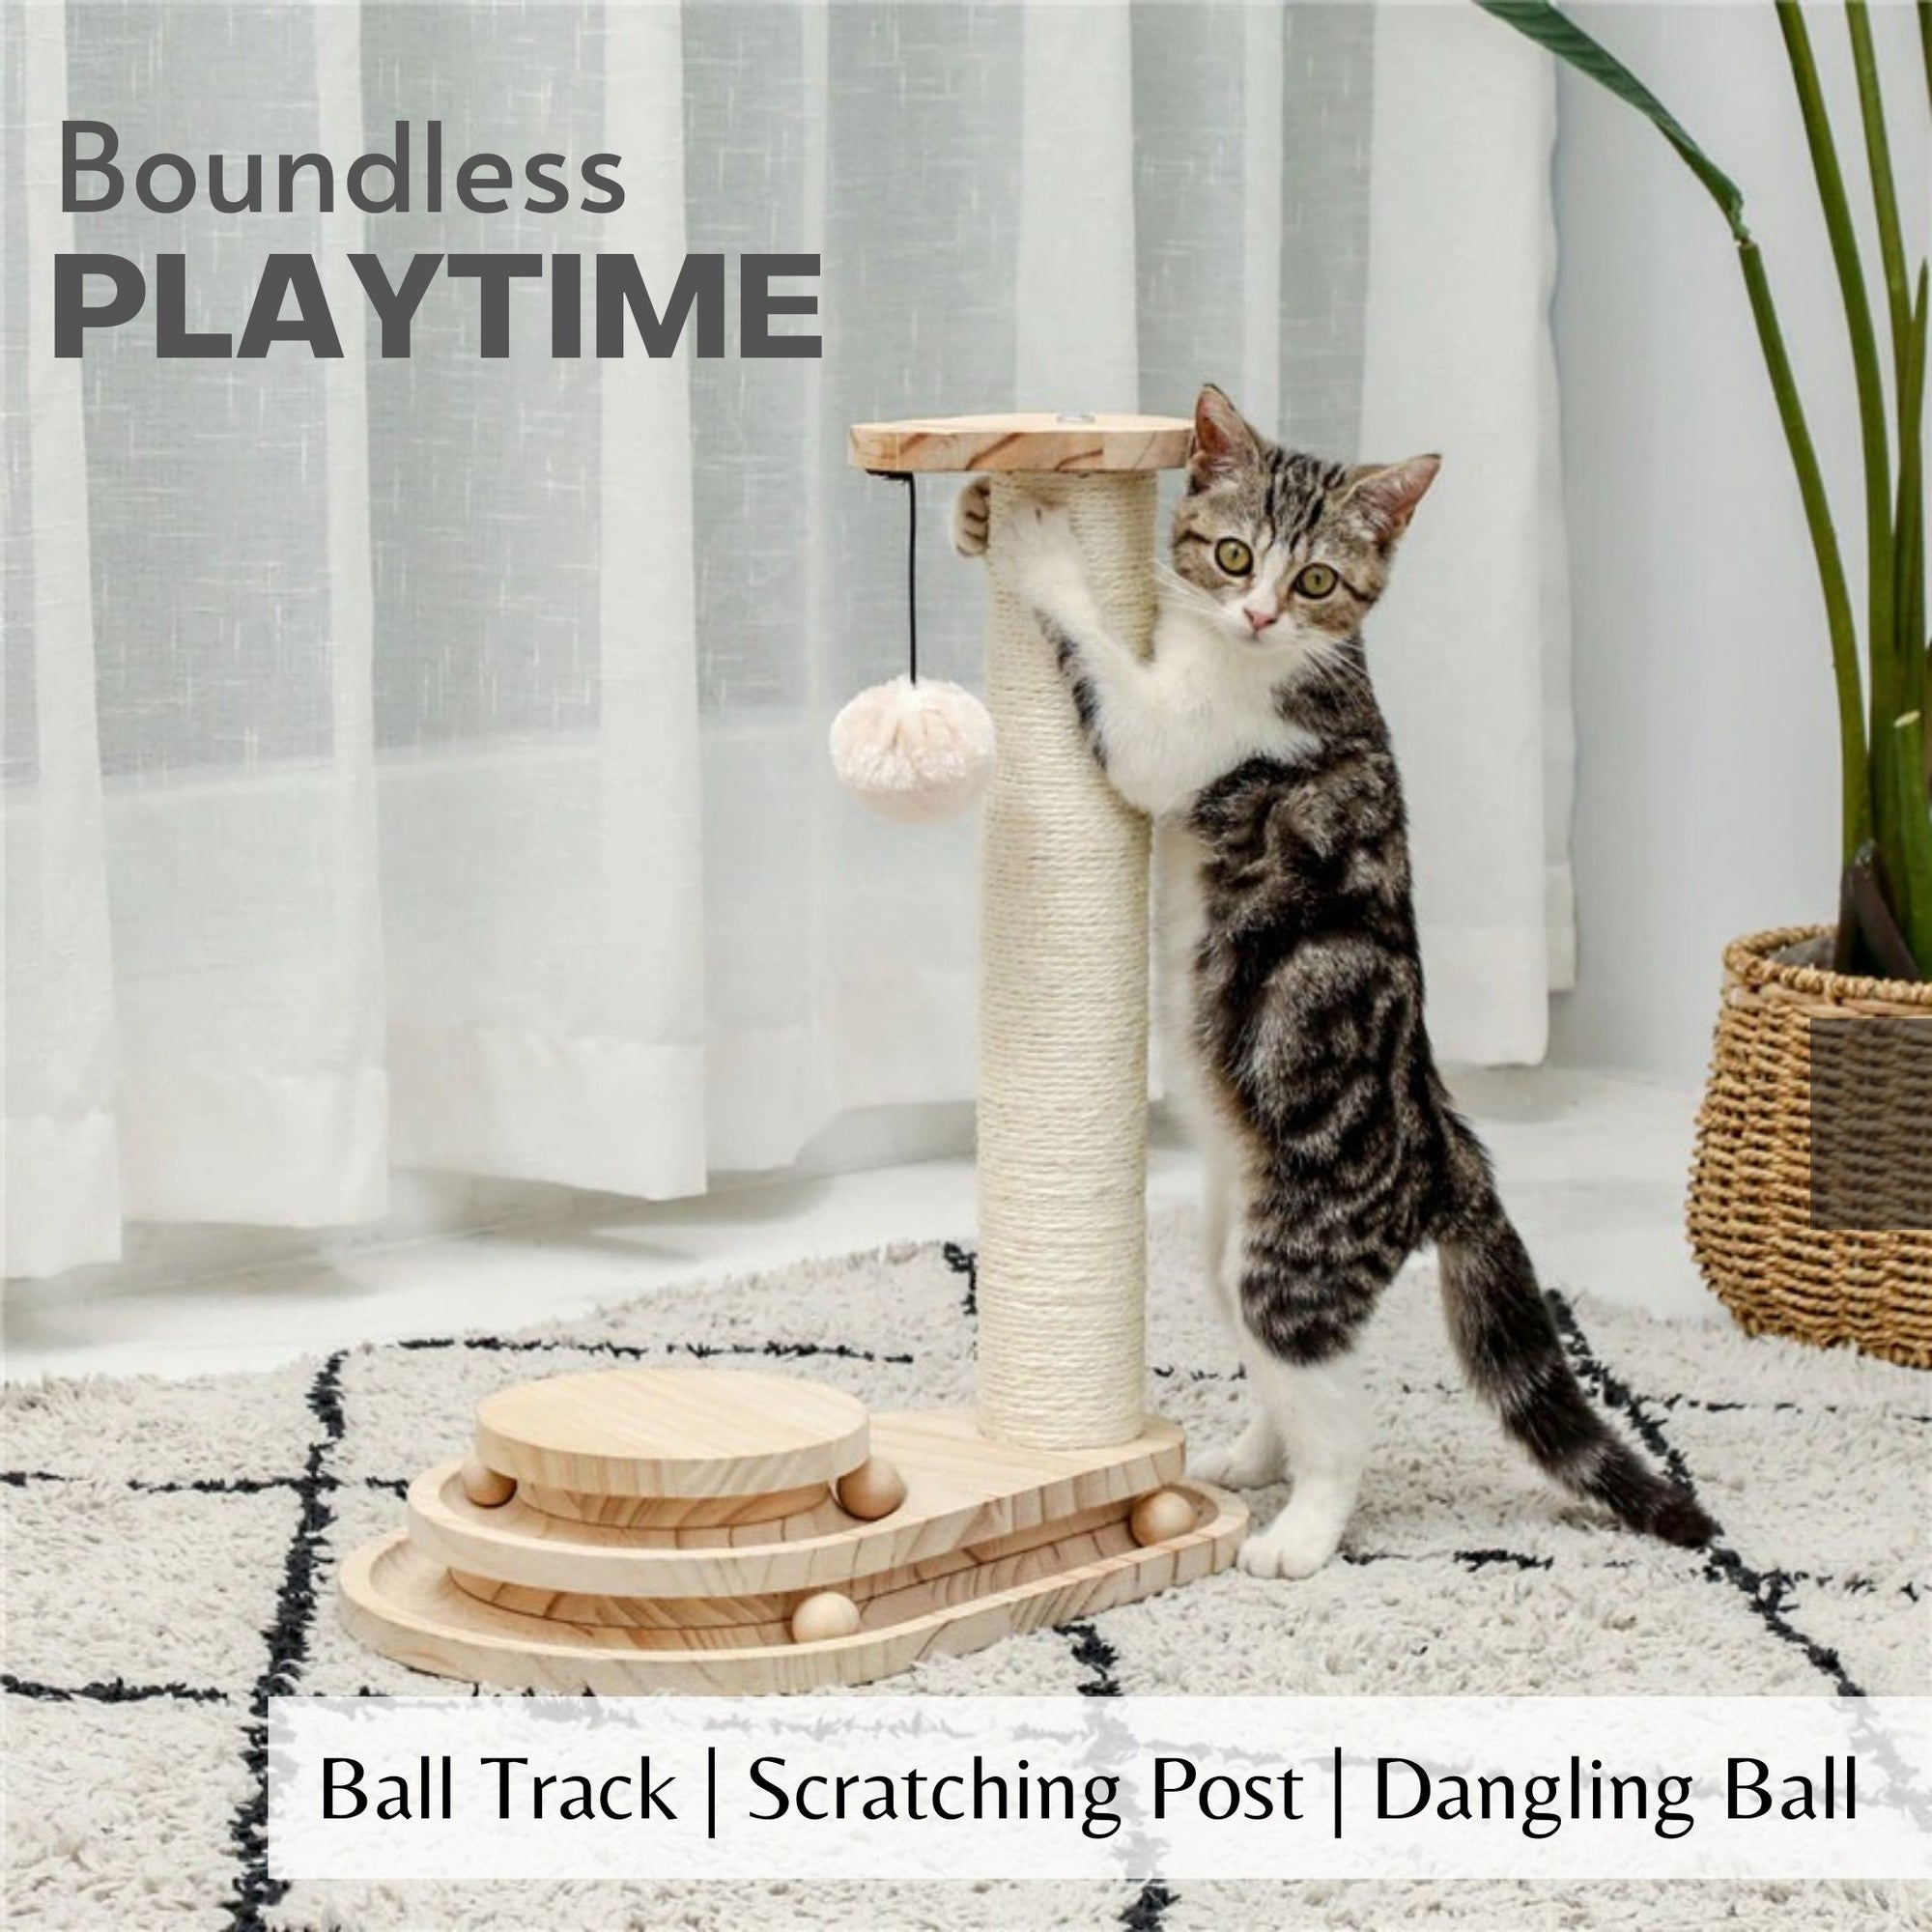 Interactive Wooden Cat Toy Double Layer Rotating Smart Track Ball Cat Scratching Post With Dangling Ball Pet Interactive Toys